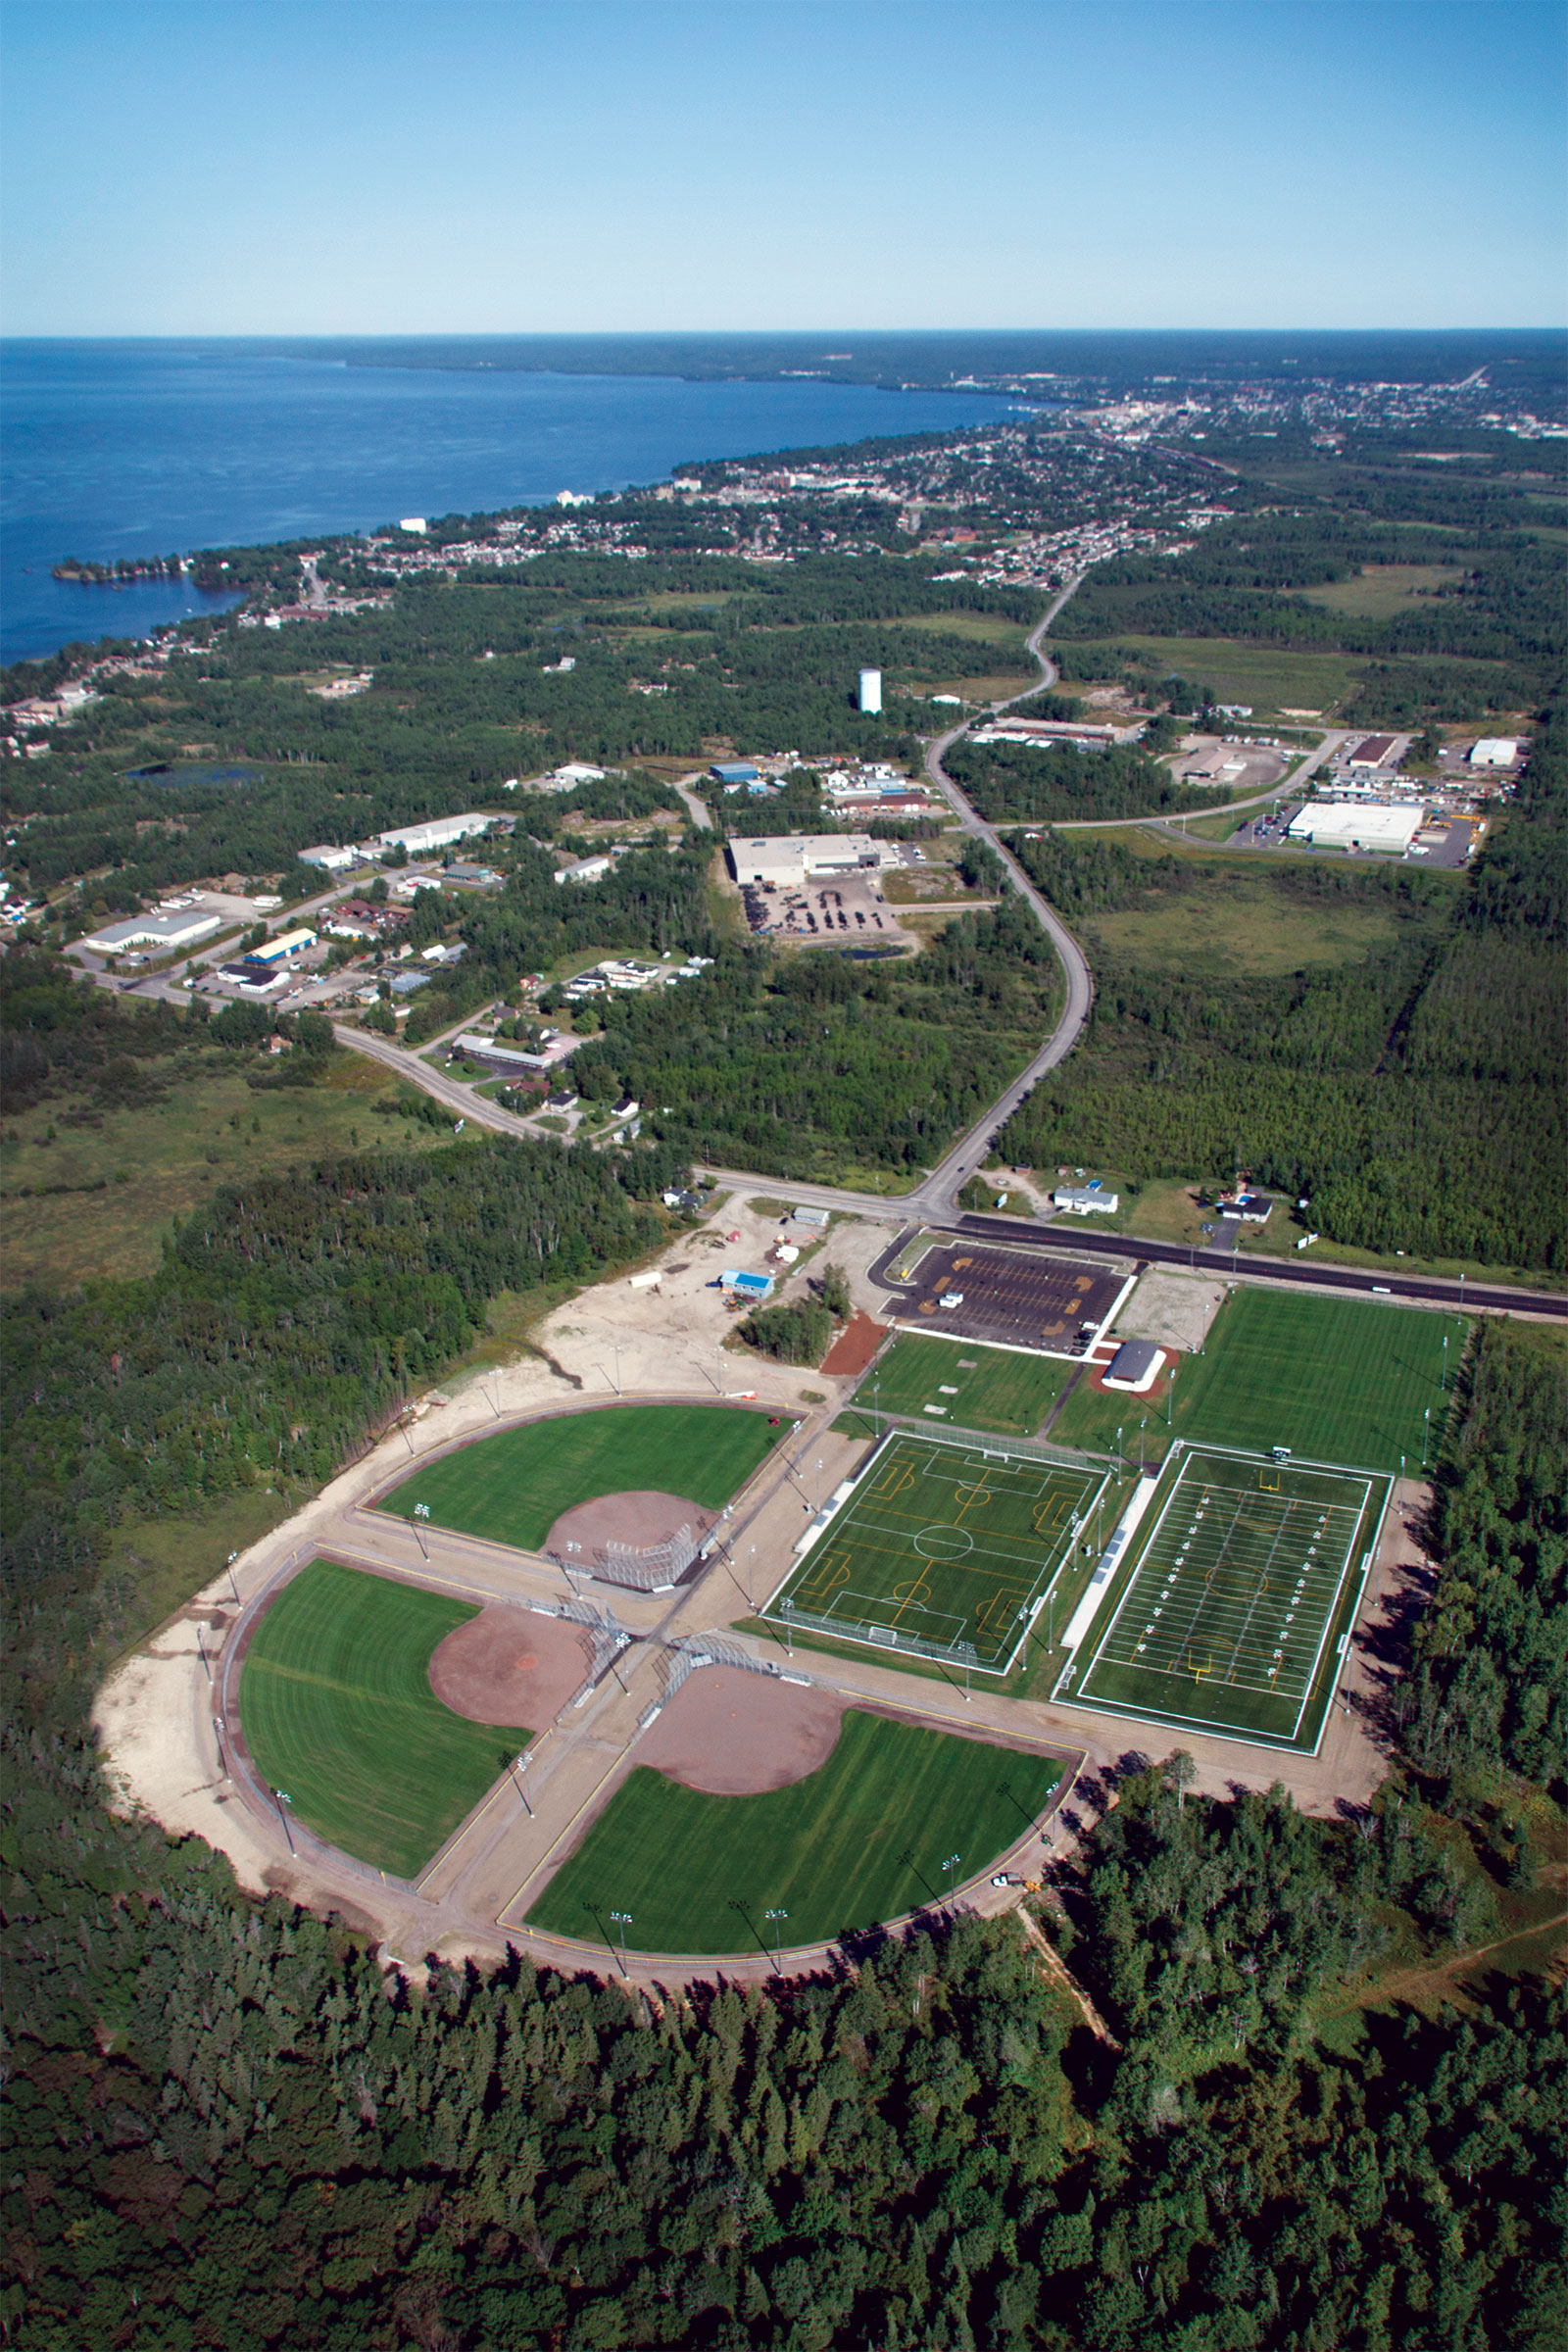 The Steve Omischl Sports Complex North Bay